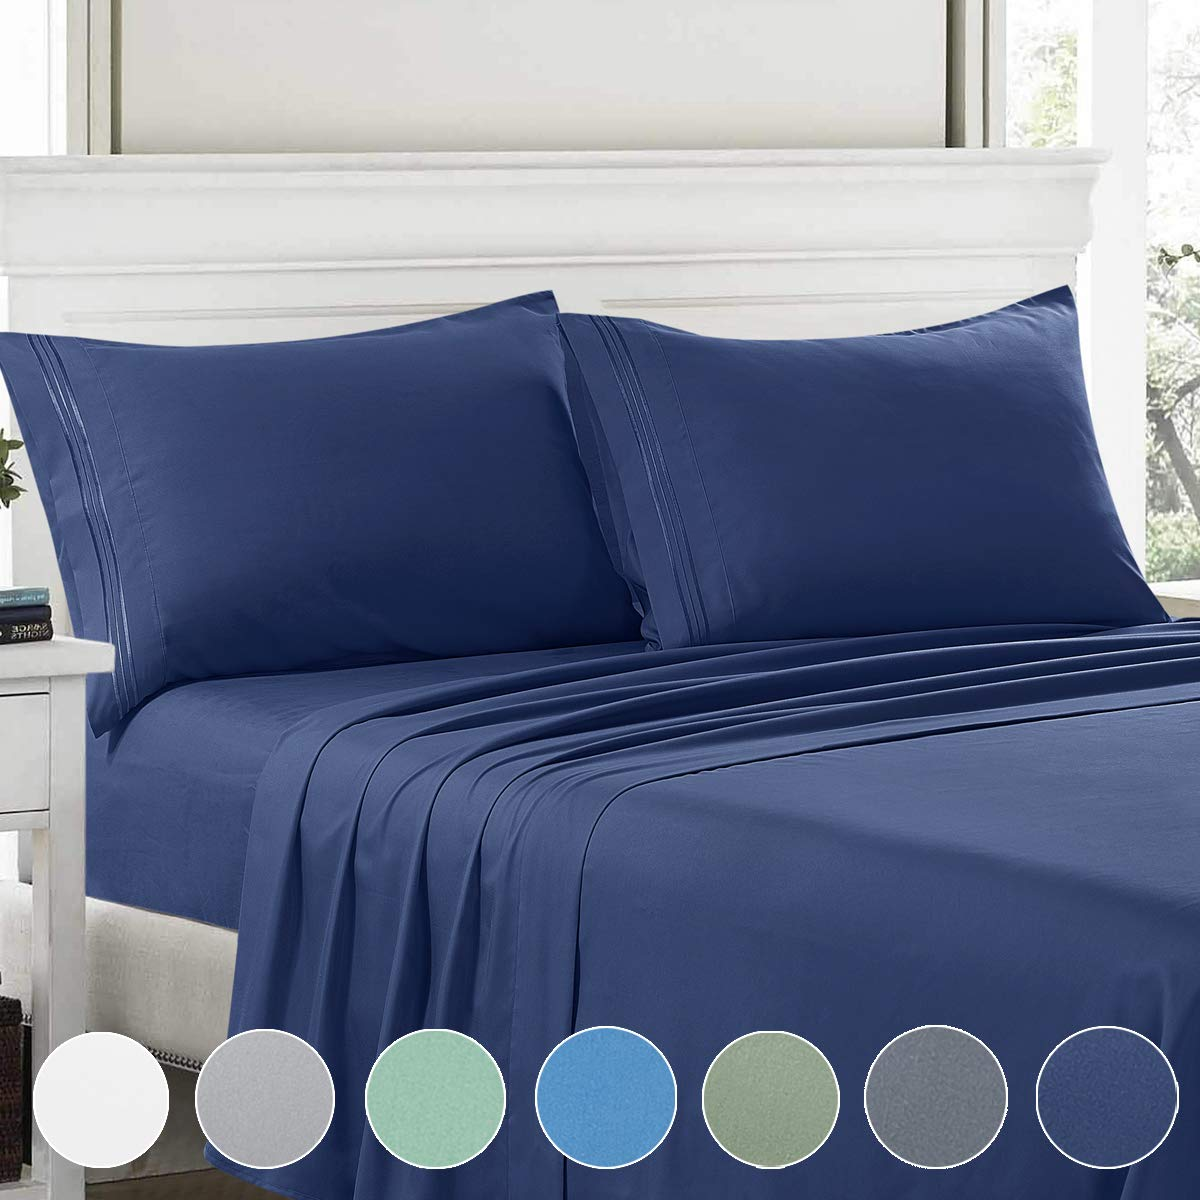 Bed Sheets Set Queen,4 Piece 1800 Series Premium Brushed Microfiber Bed Sheets, 1INCH,Breathable Cooling Comfy Super Soft Bedding With Deep Pocket for Toddler room,Guest room,Hotel,RV(Navy Blue,Queen)